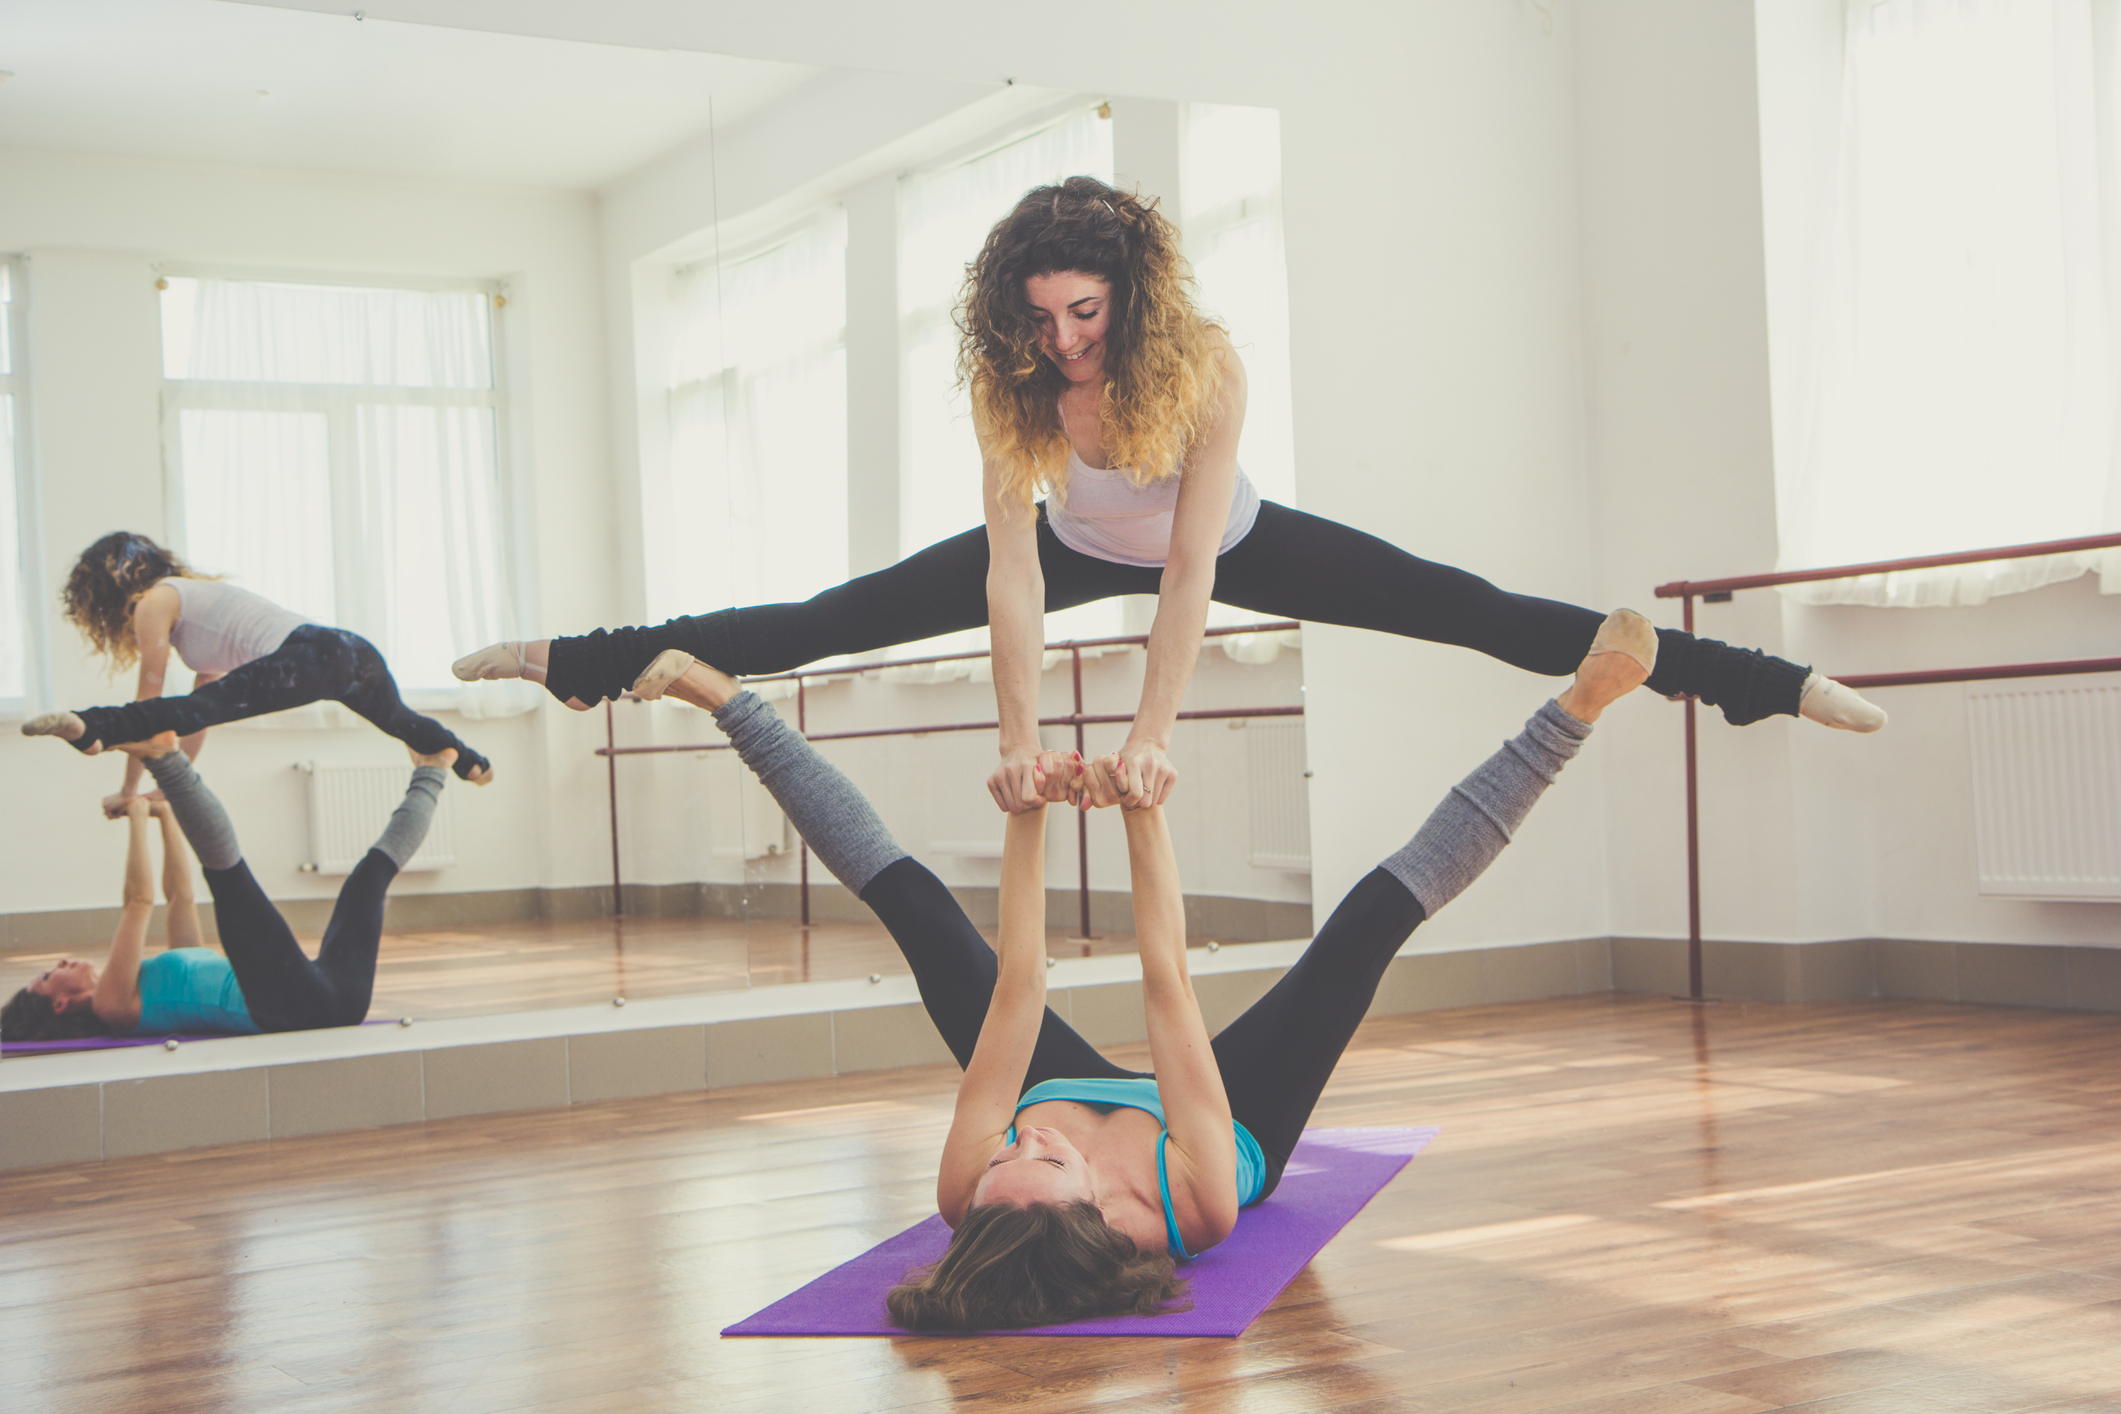 Two fit women are doing balance exercise